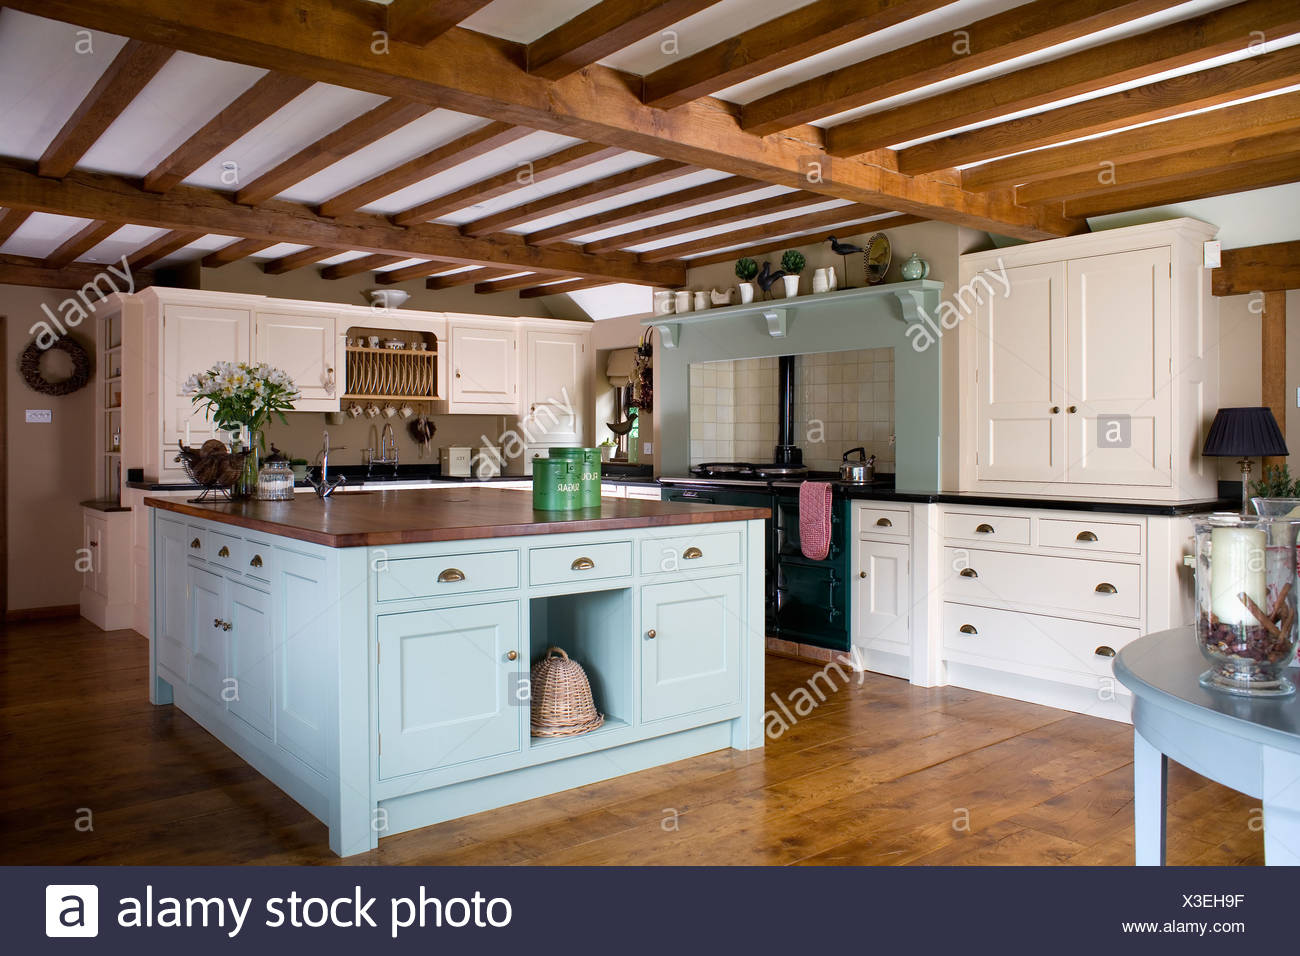 Soffitto Travi A Vista pastel blue island unit in large cream country kitchen with